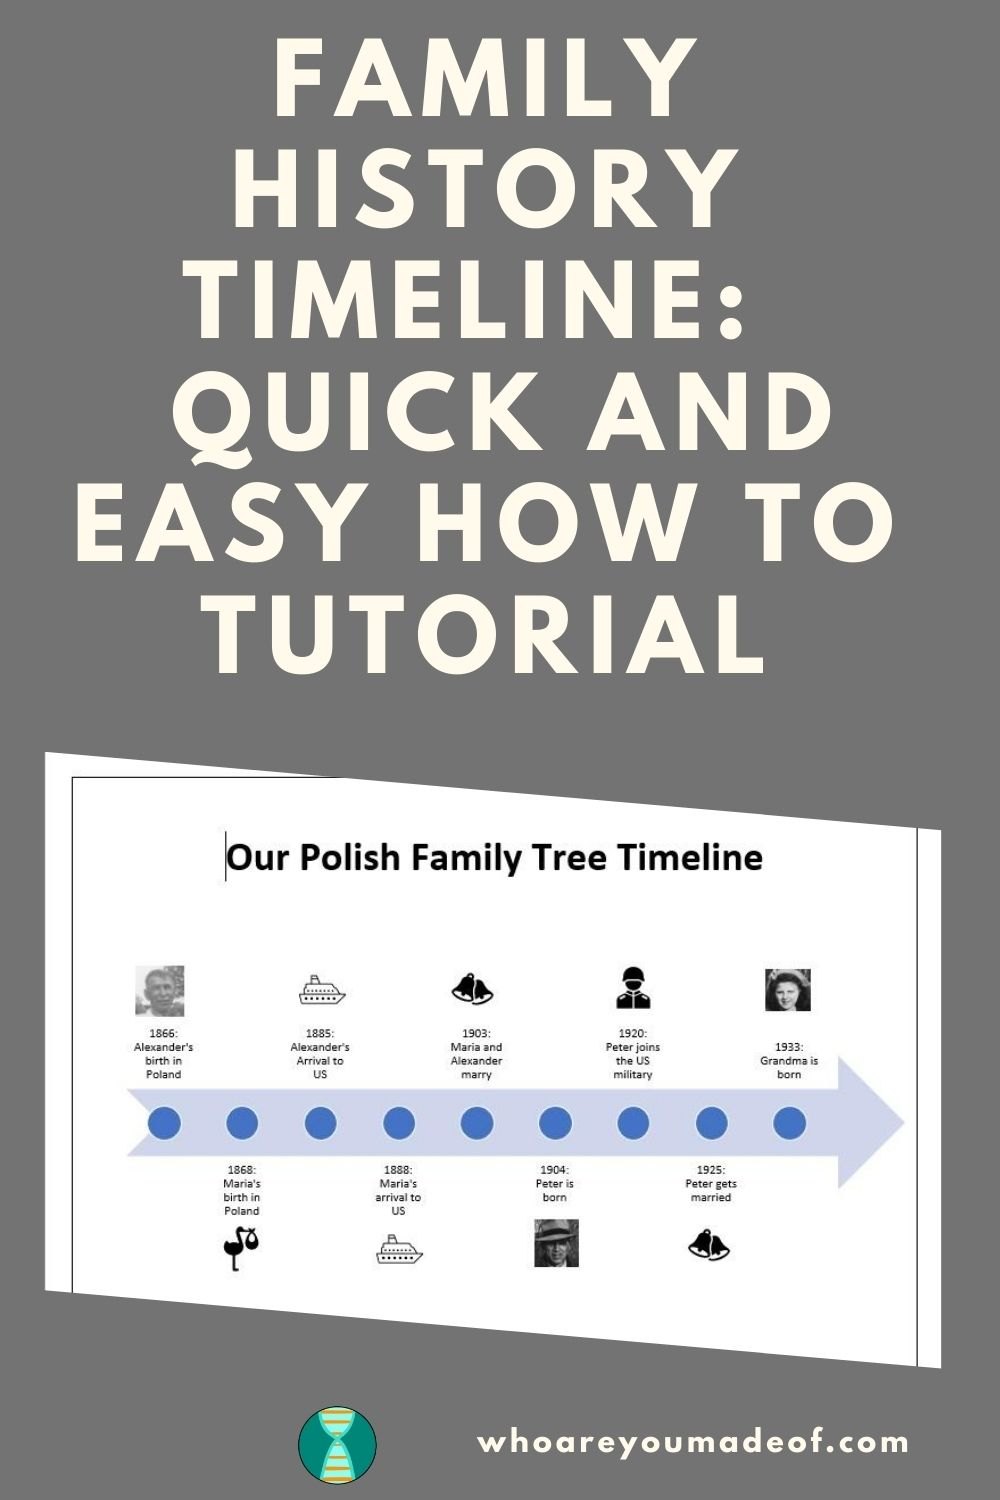 Family History Timeline Quick and Easy How To Tutorial Pinterest Image